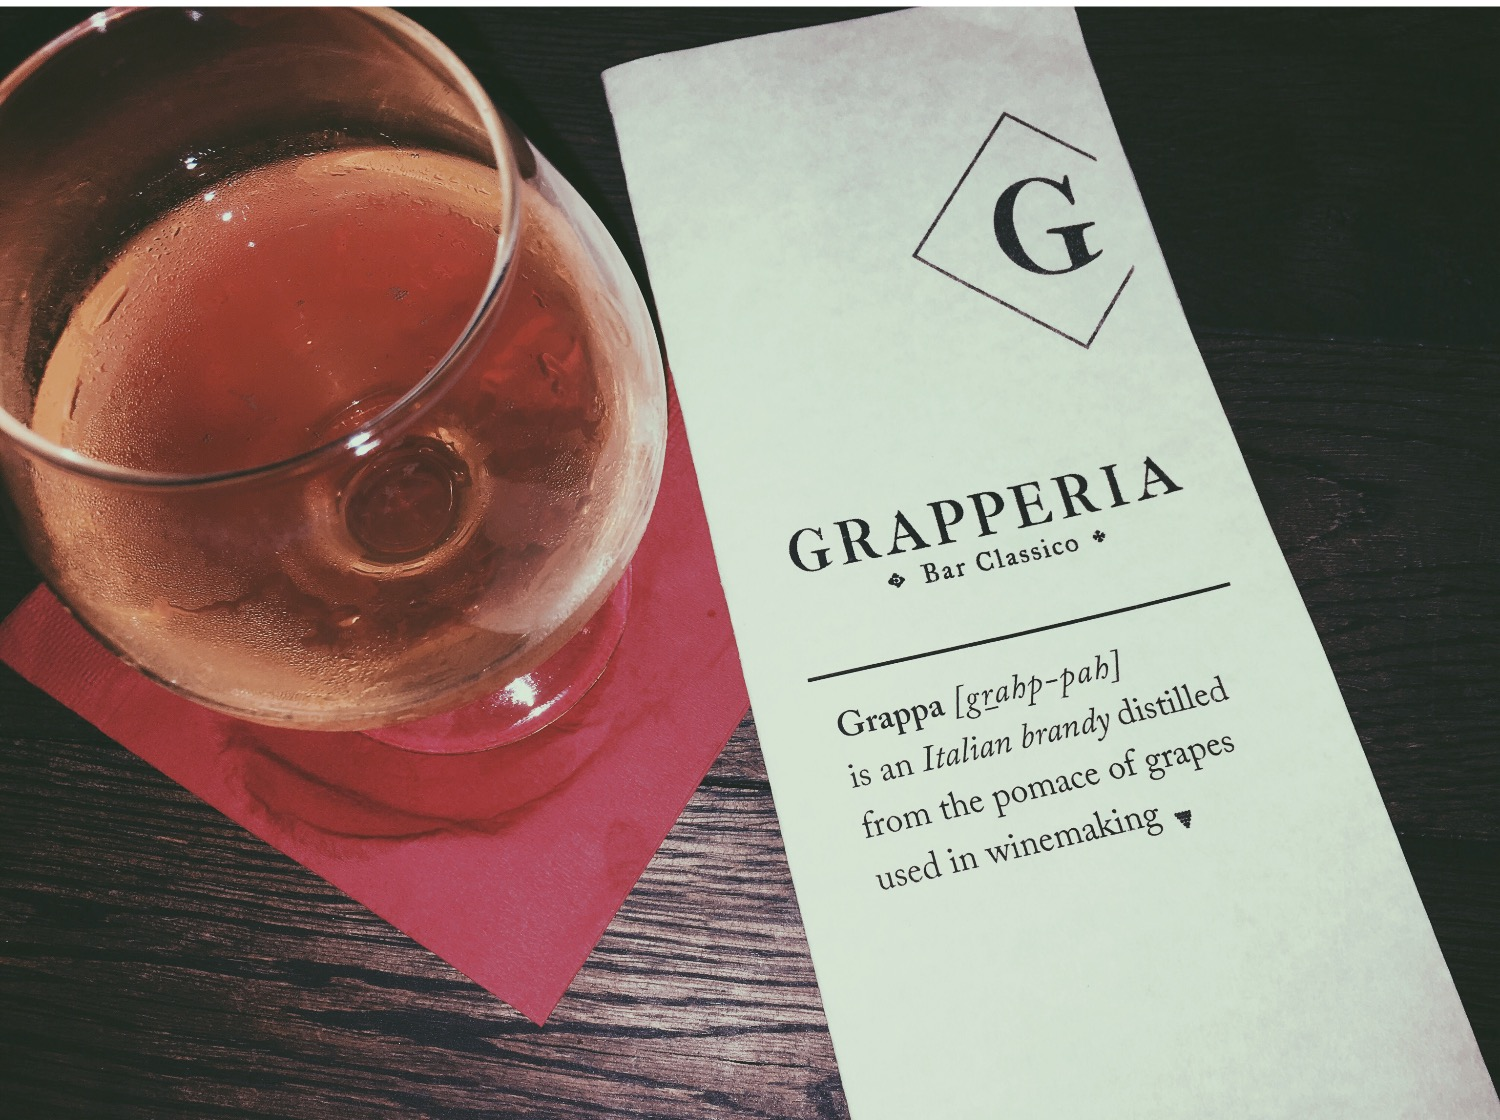 The Grapperia